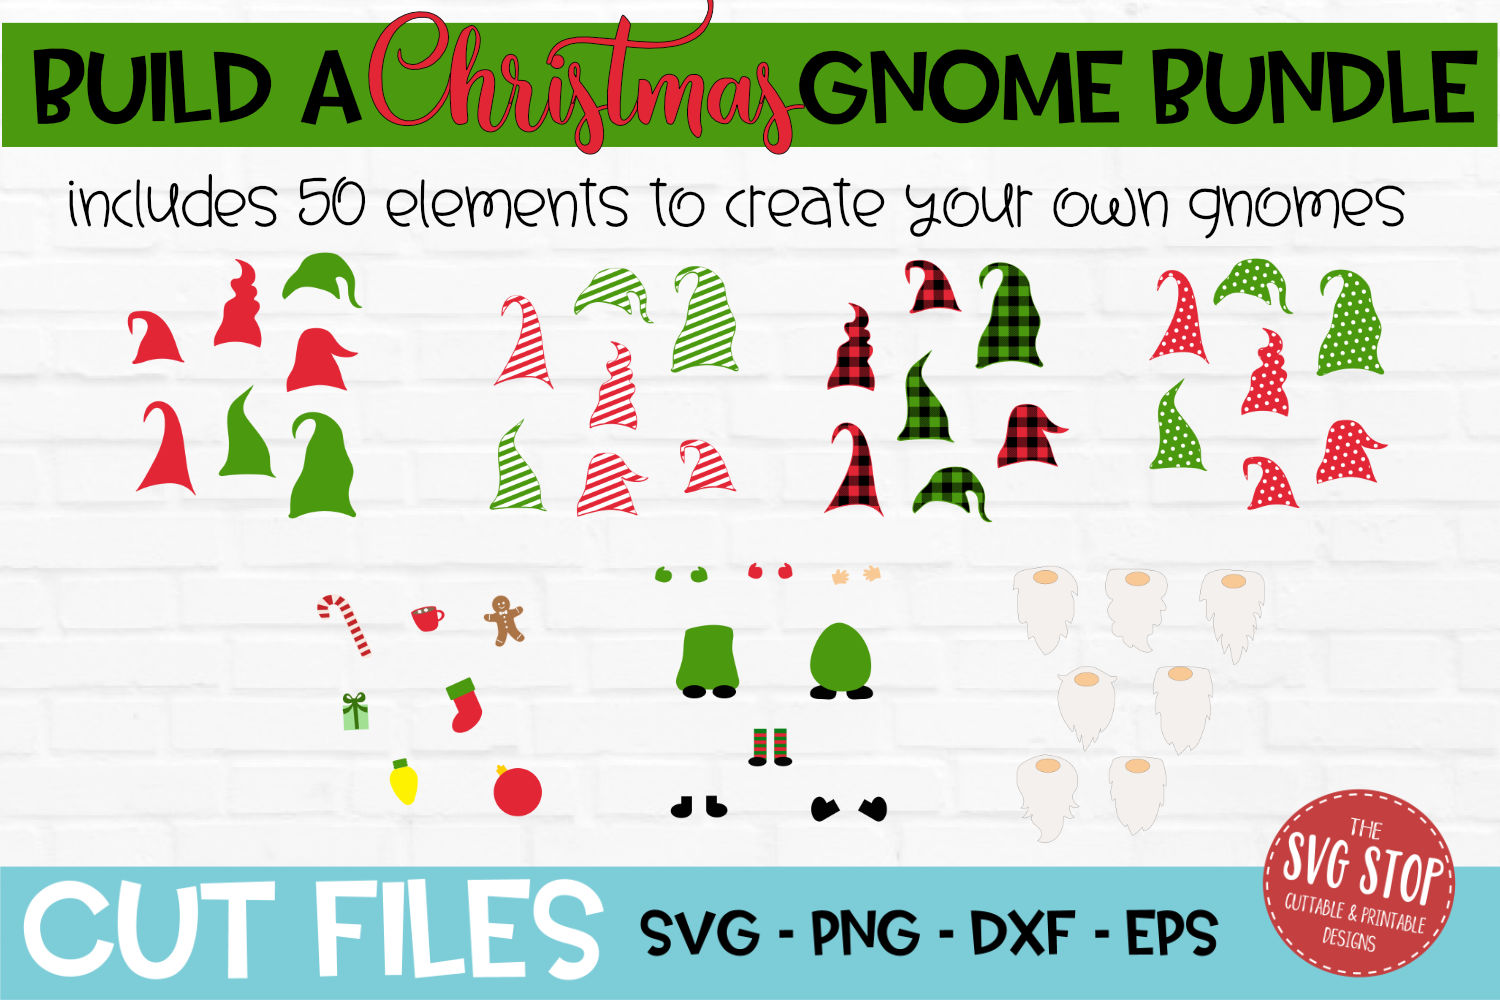 Build a Christmas Gnome Bundle SVG, PNG, DXF, EPS example image 2